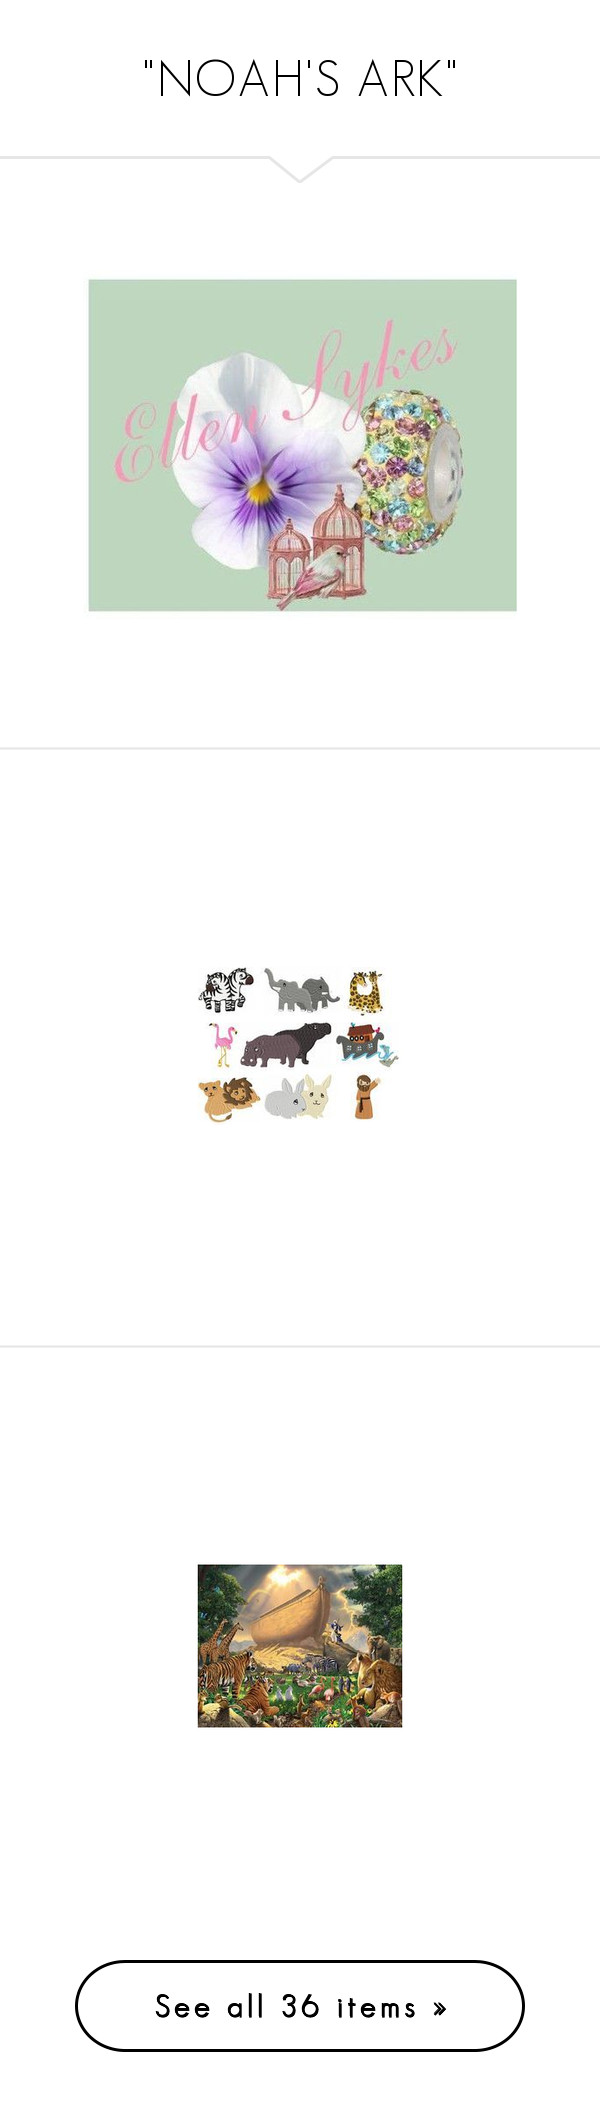 """""""NOAH'S ARK"""" by lnotb71 ❤ liked on Polyvore featuring art"""